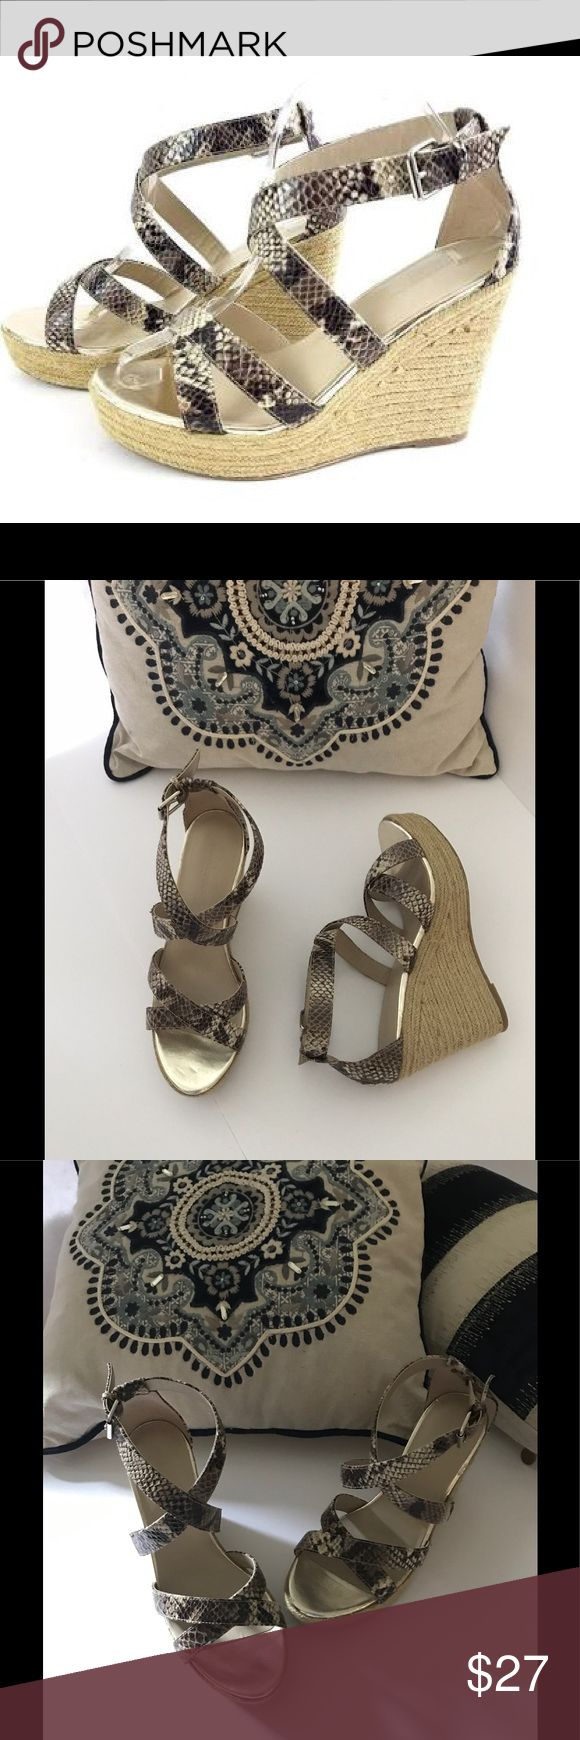 """Banana Republic Snake Print Espadrille Wedge Banana Republic snake print strappy espadrille platform jute wedge. Excellent condition, no signs of wear. Only flaw is a small place where glue discolored on the jute as shown in last pic, but very minor & not noticeable. No box. Heel height approx 4.5"""", platform approx 1"""". Clean, non-smoking home. I package to protect your purchase. 5⭐️avg rated seller; ship within 1 day after purchasing. 30% bundle discount on just 2 or more. Banana Republic…"""